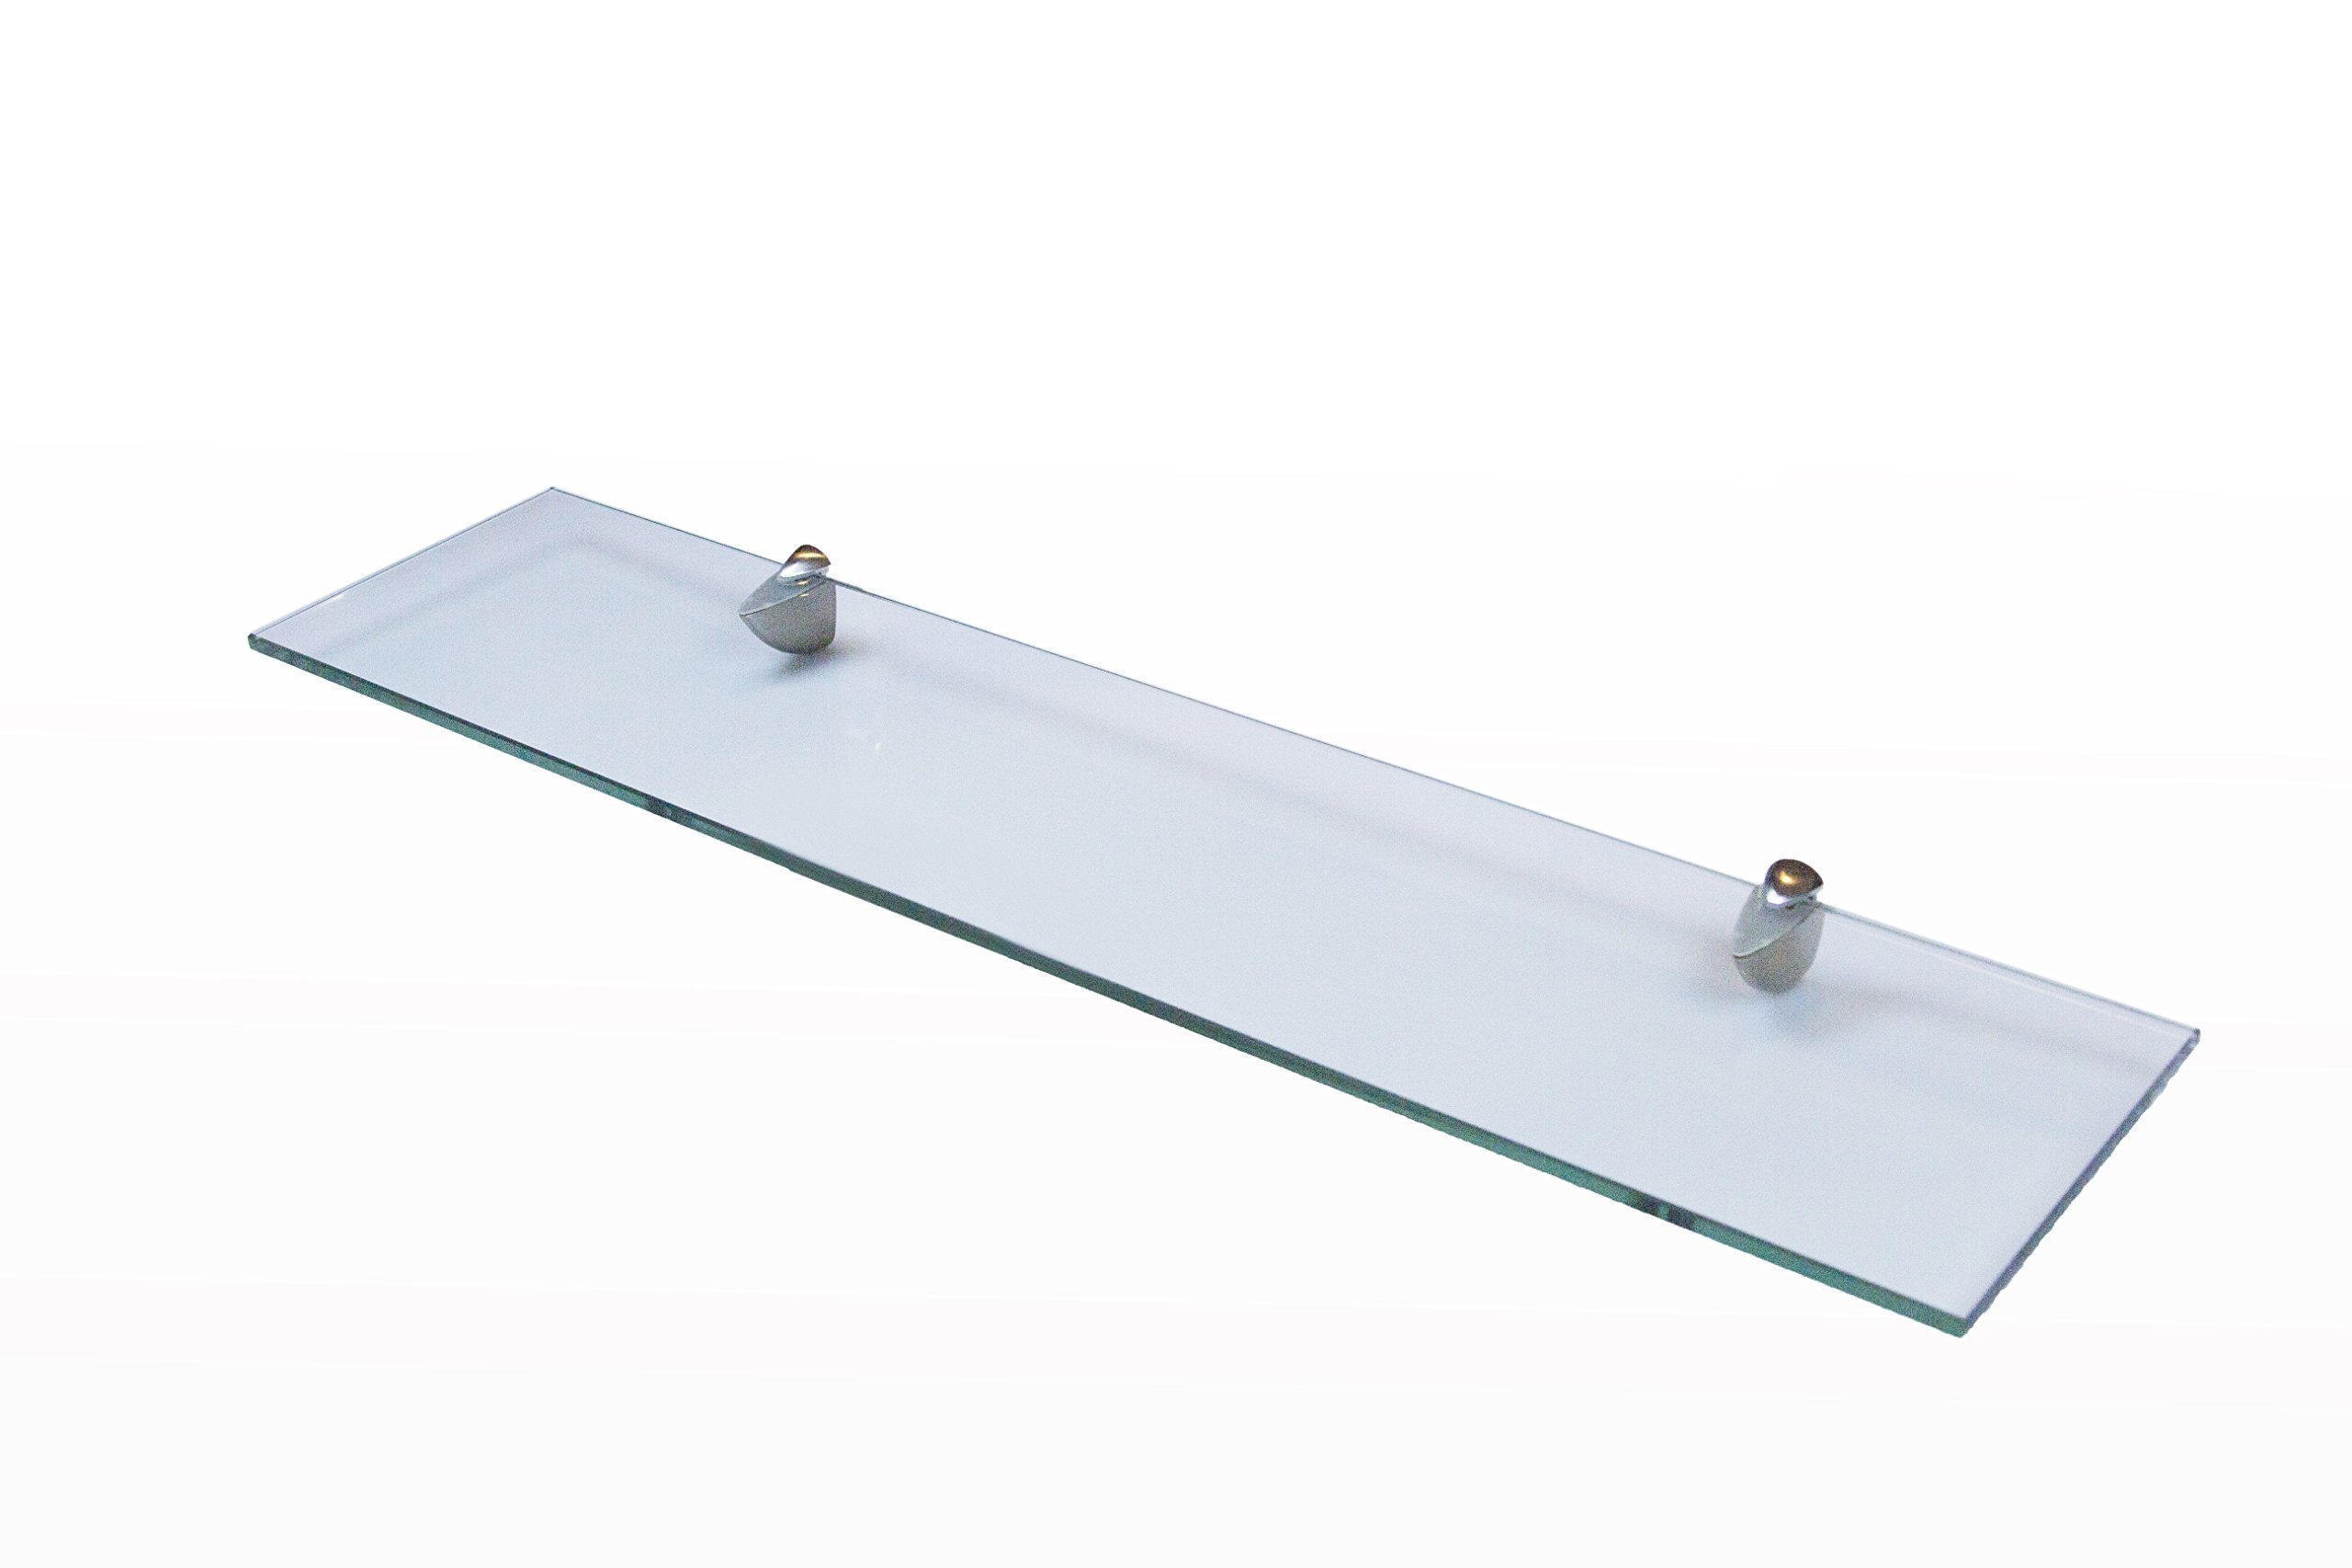 glass shelf find line cmu fpxal inch floating get quotations via bathroom office tempered laying down vinyl floor tile thick board umbra bookshelf long narrow computer table diy